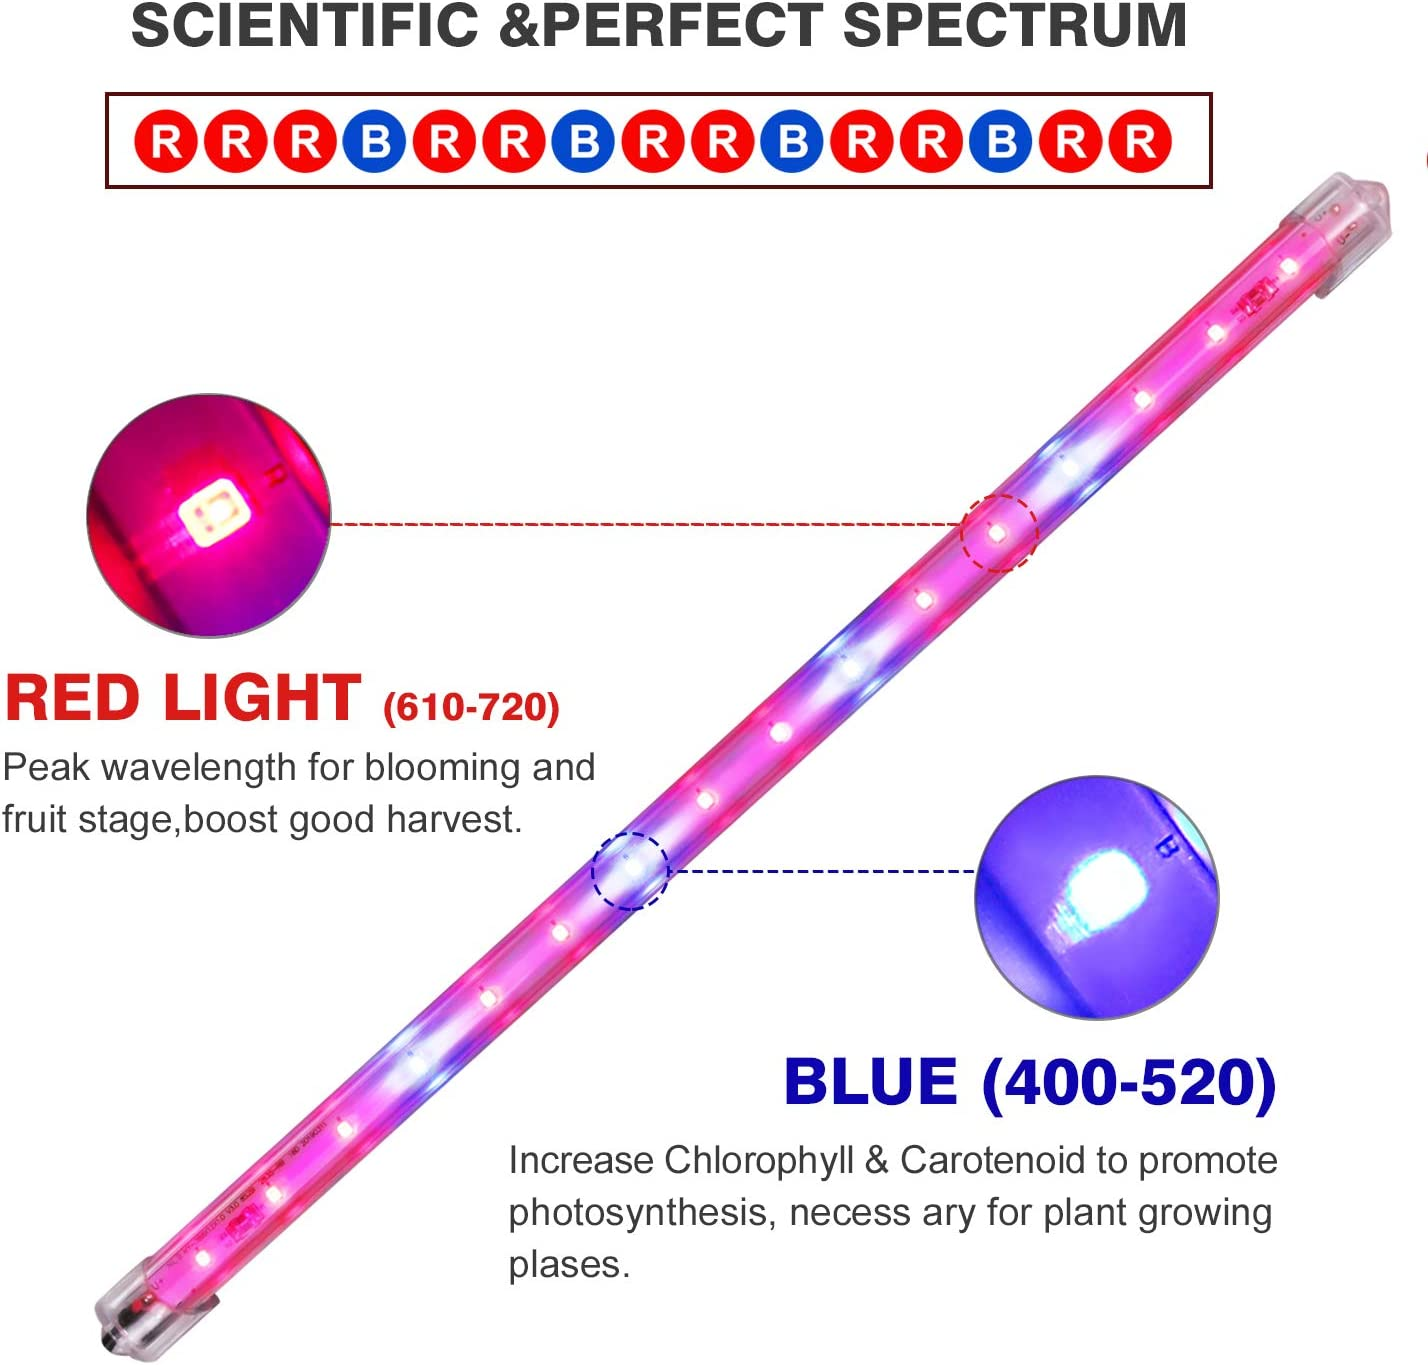 Roleadro Grow Light for Indoor Plants Upgraded Version LM301B Chips /&3500K /&Red Full Spectrum T5 Grow Lamp with Timer Plant Lights Bar 4 Dimmable Levels for Indoor Tent Seedling Hydroponics 4Pack